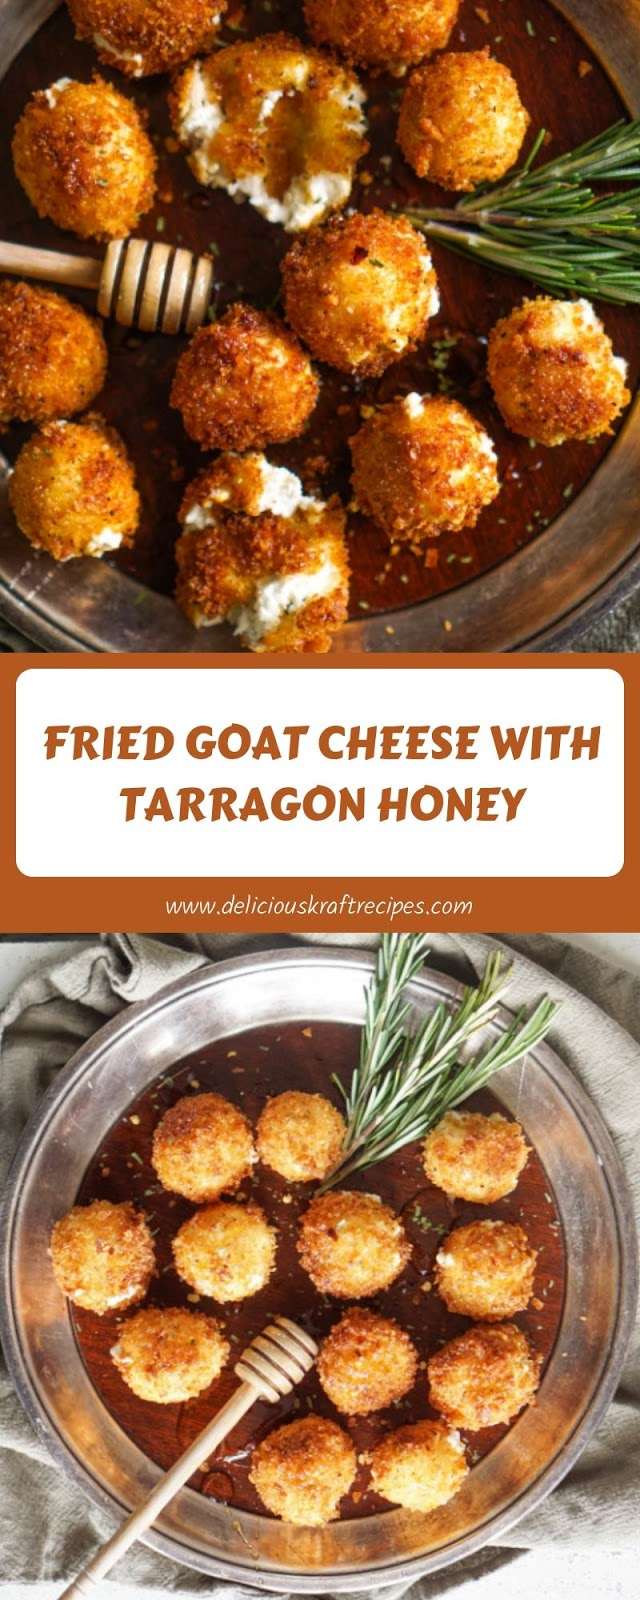 FRIED GOAT CHEESE WITH TARRAGON HONEY